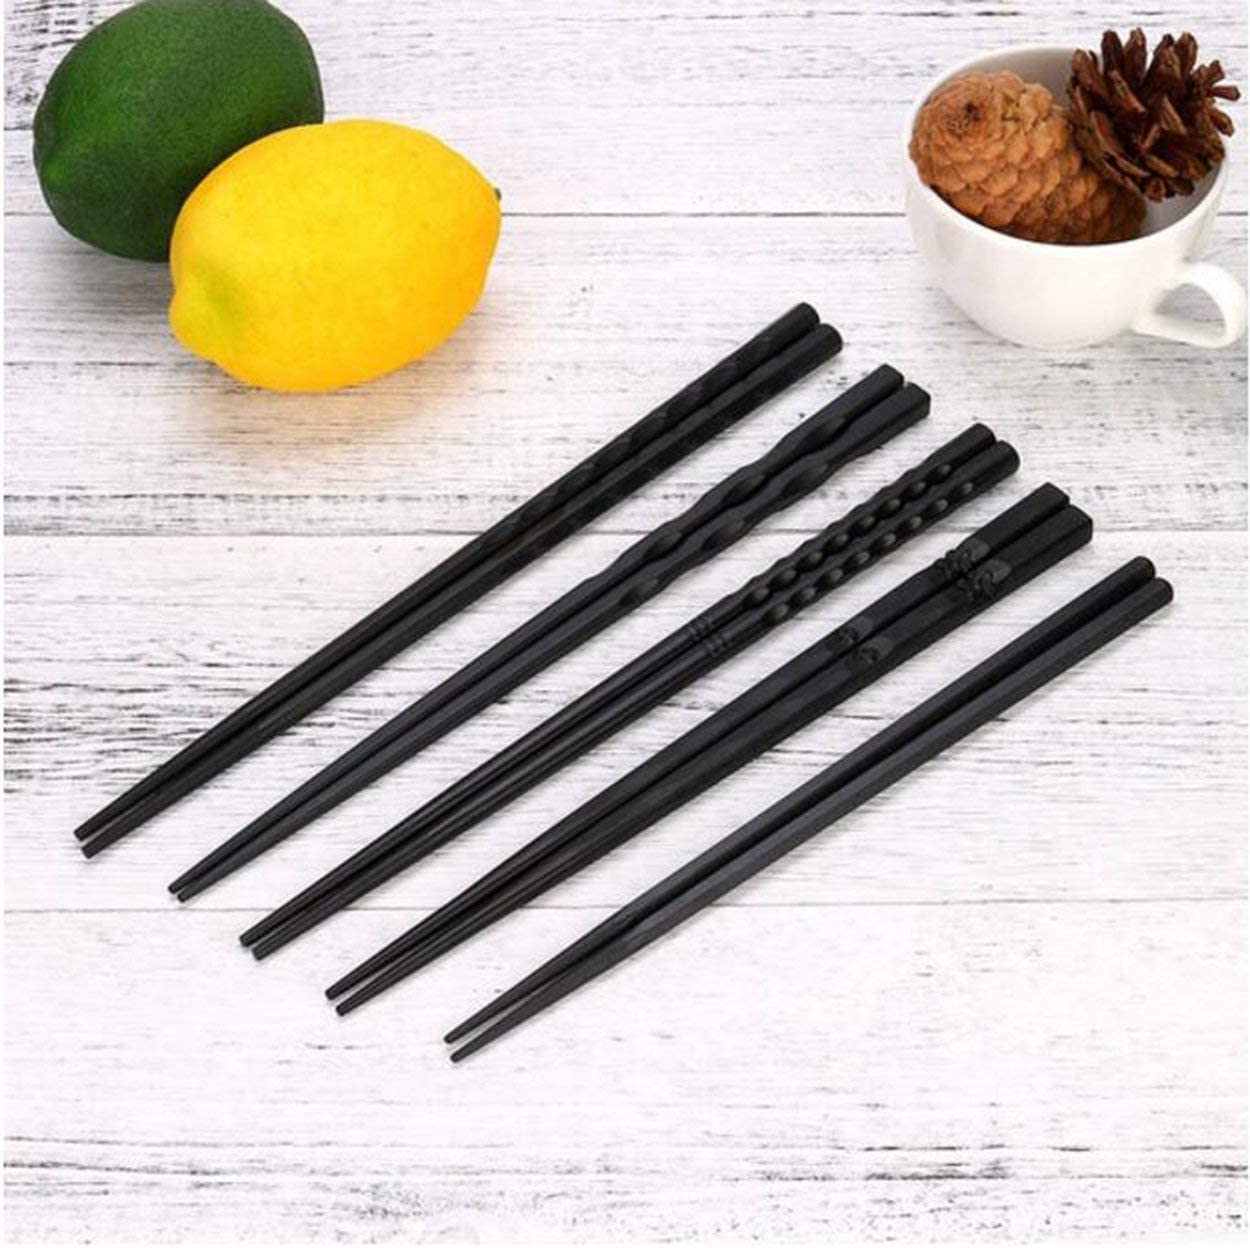 Lorenlli 1 Pair Japanese Chopsticks Alloy Non-Slip Wood Color Sushi Chop Sticks Set Chinese Gift Family Friends Colleagues Gifts